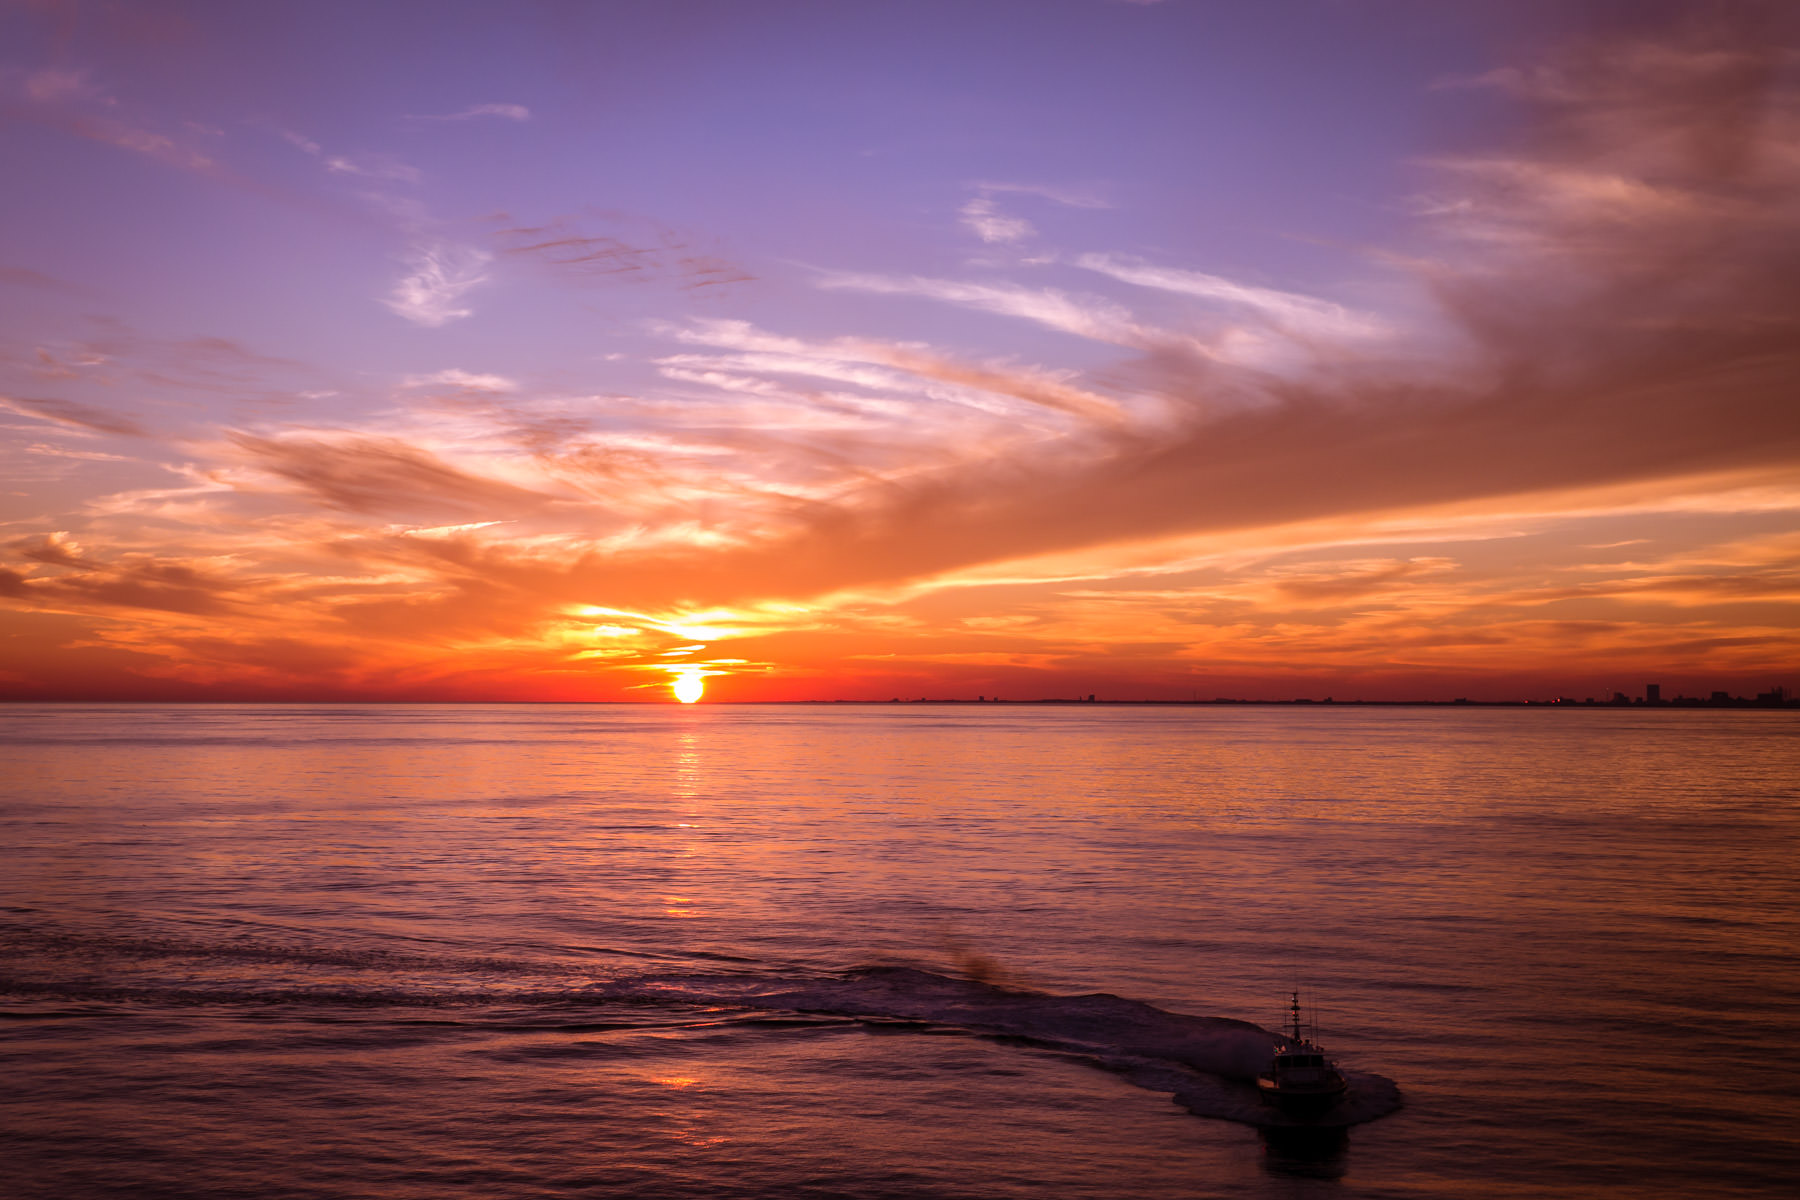 The sun sets on the Gulf of Mexico near Bolivar Roads just off the coast of Galveston, Texas.